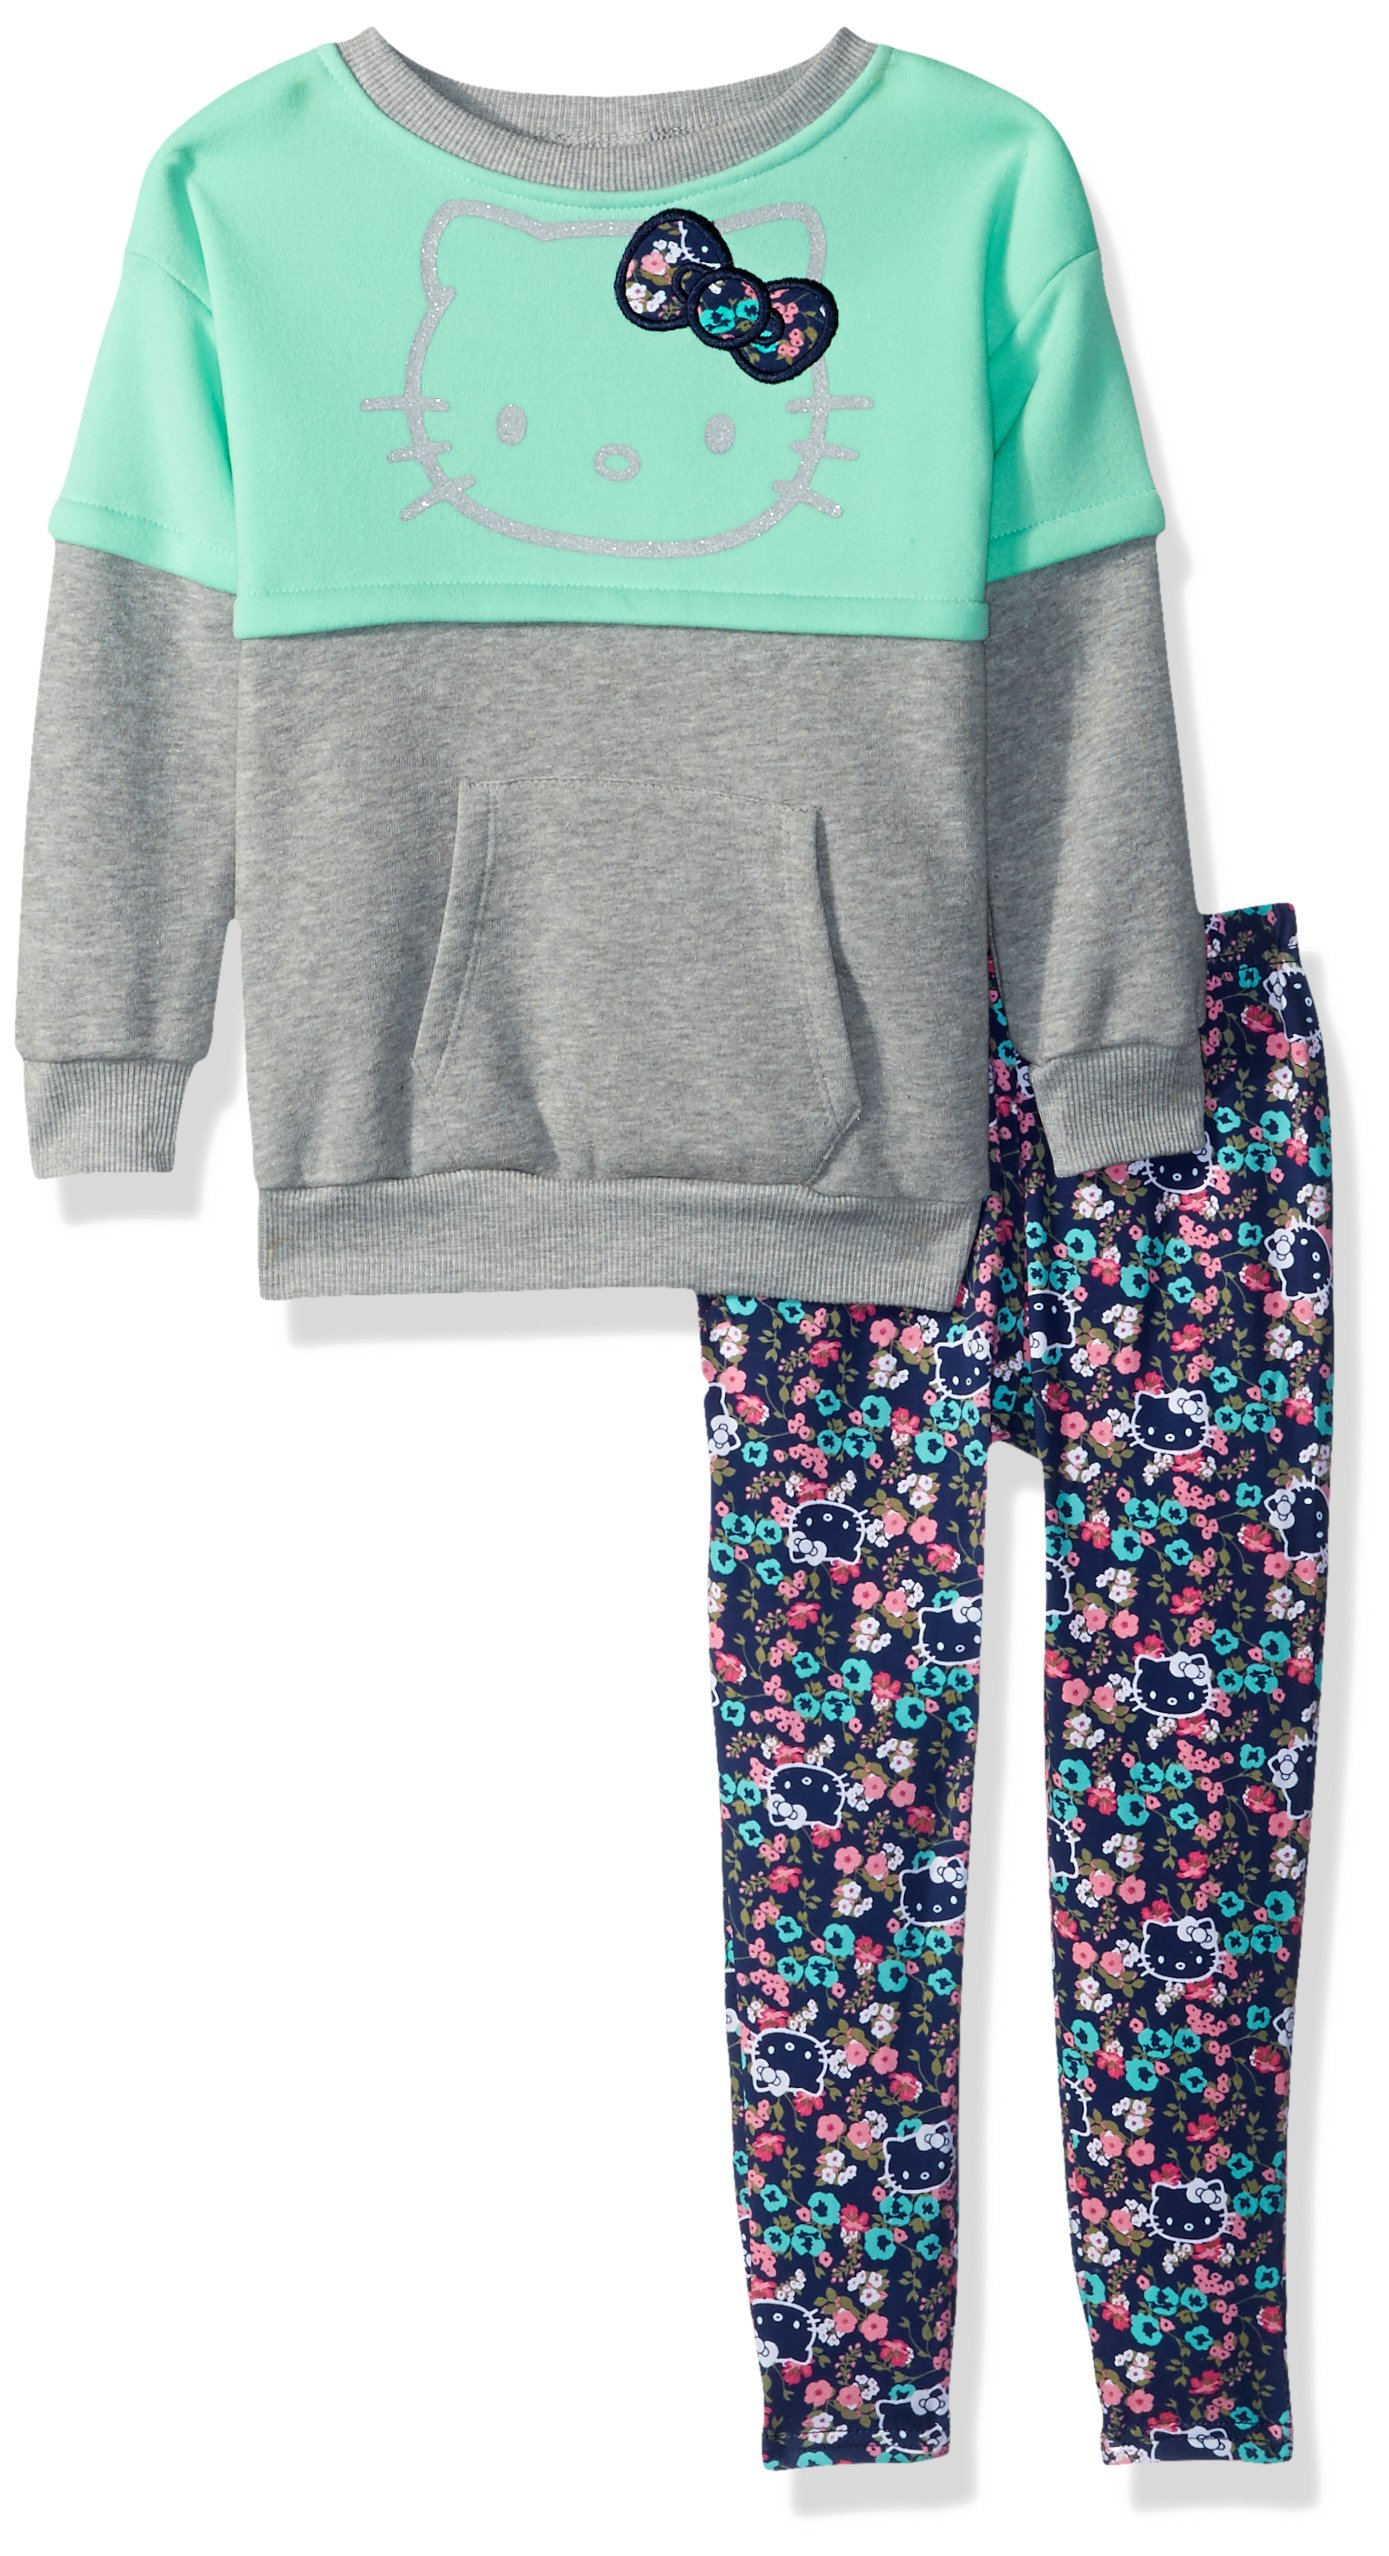 Hello Kitty Toddler Girls' 2 Piece Long Sleeve and Legging Set, Mint Green, 2T